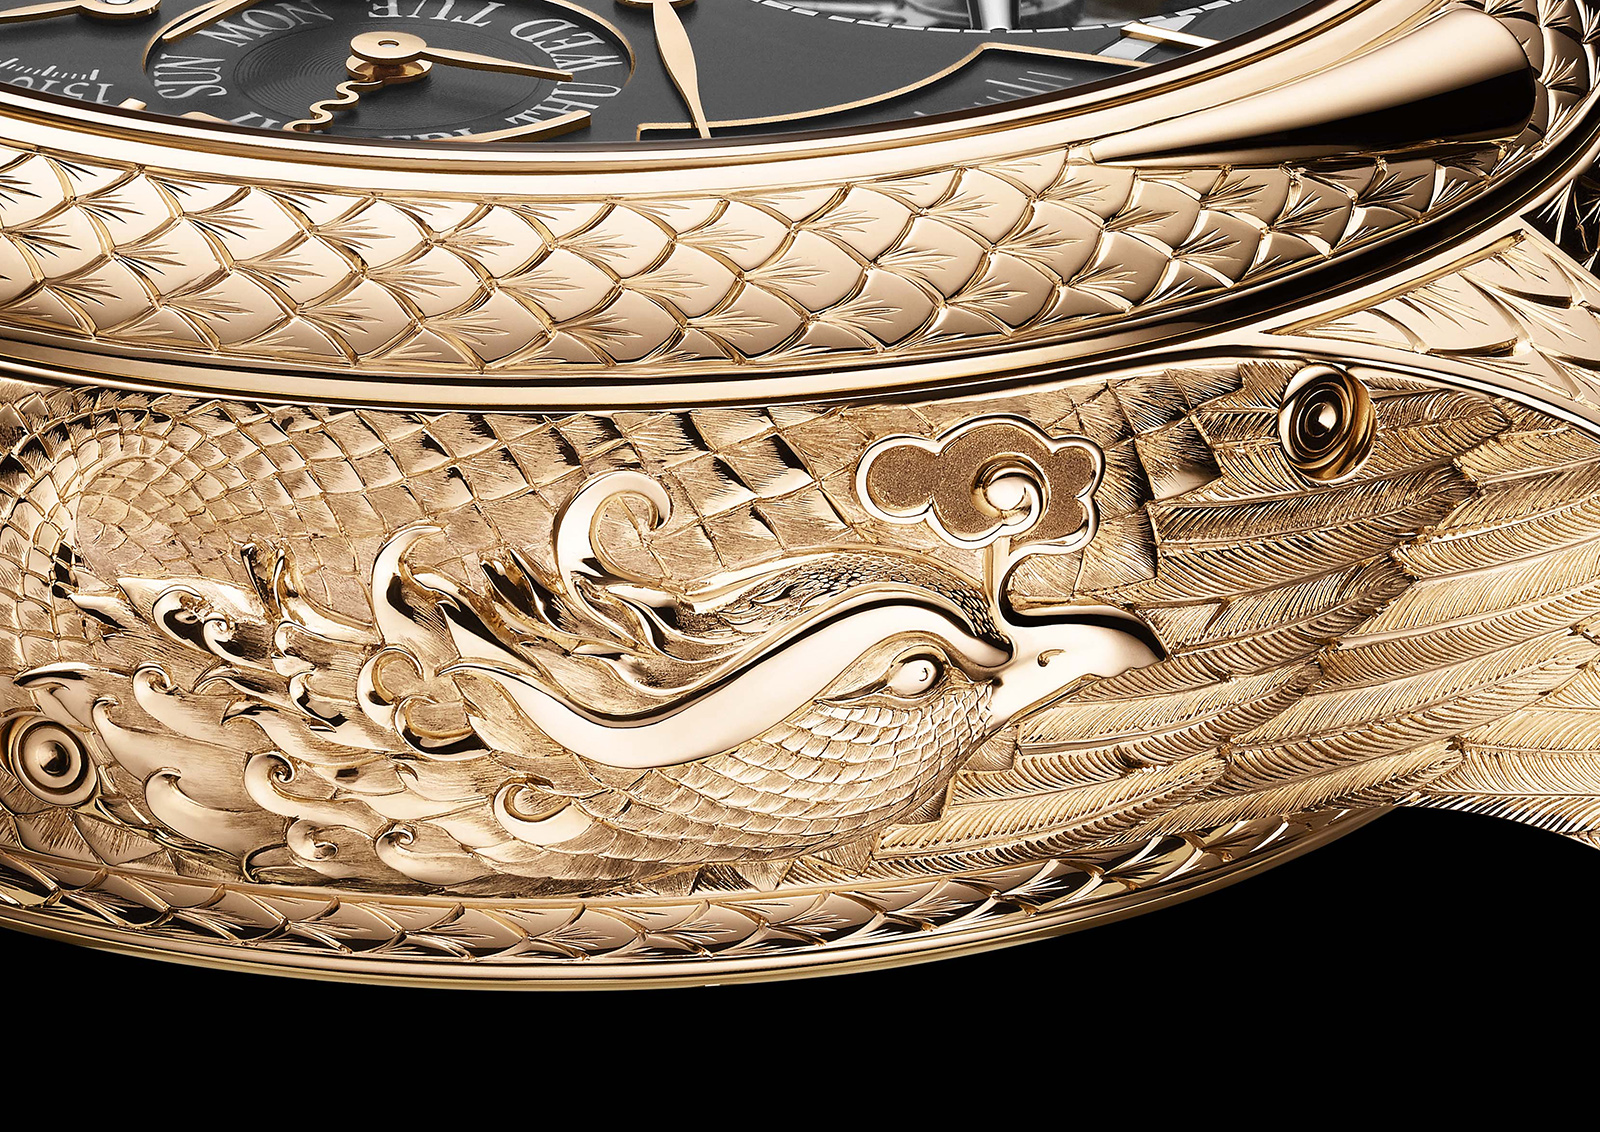 Vacheron Constantin Cabinotiers Grand Complication Phoenix 1